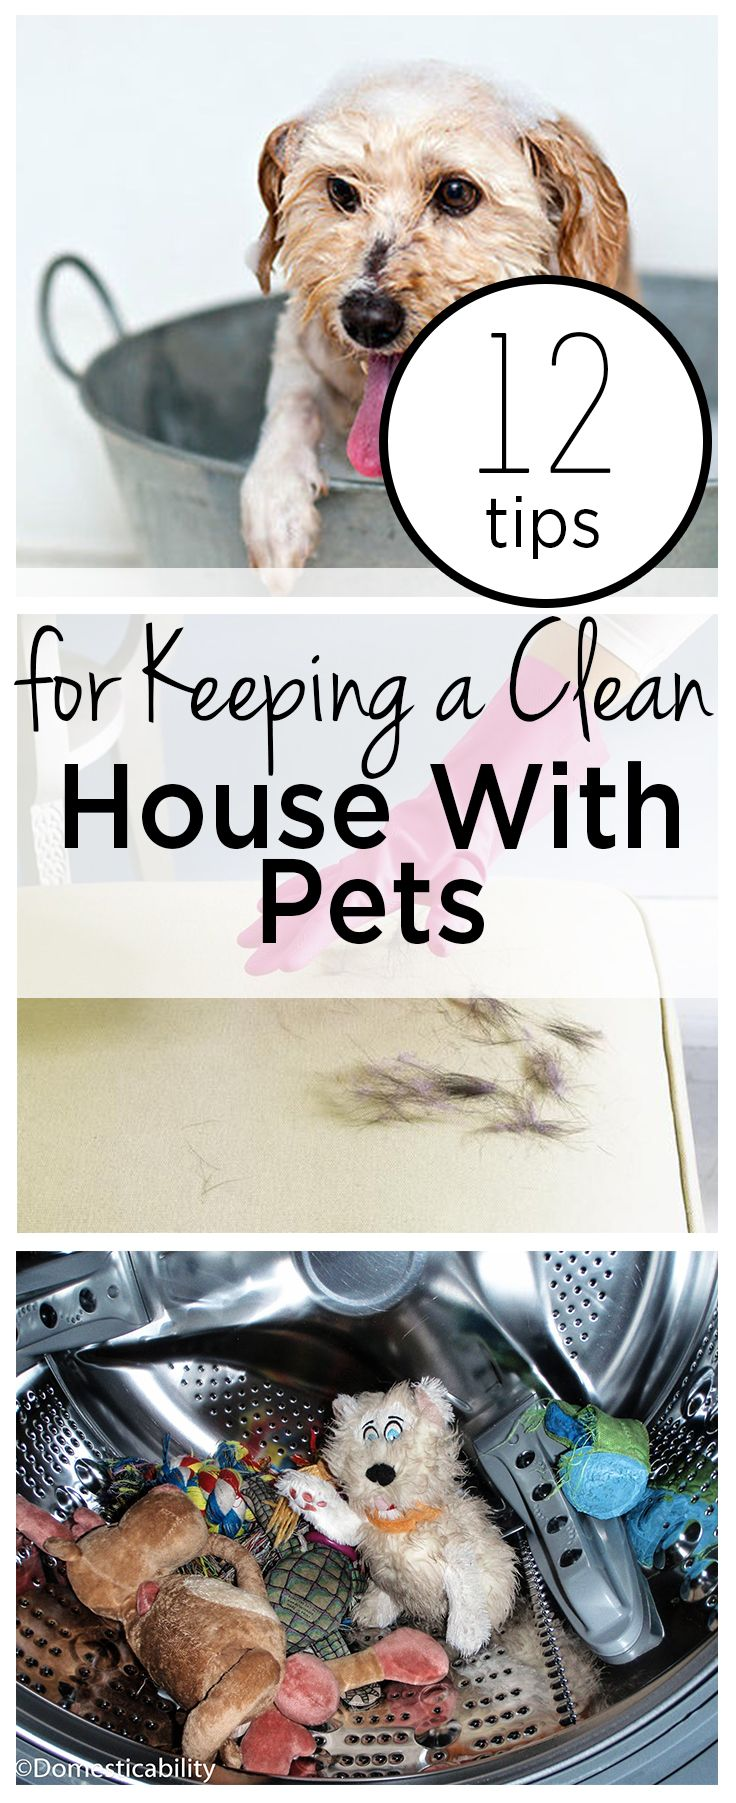 12 Tips for Keeping a Clean House With Pets